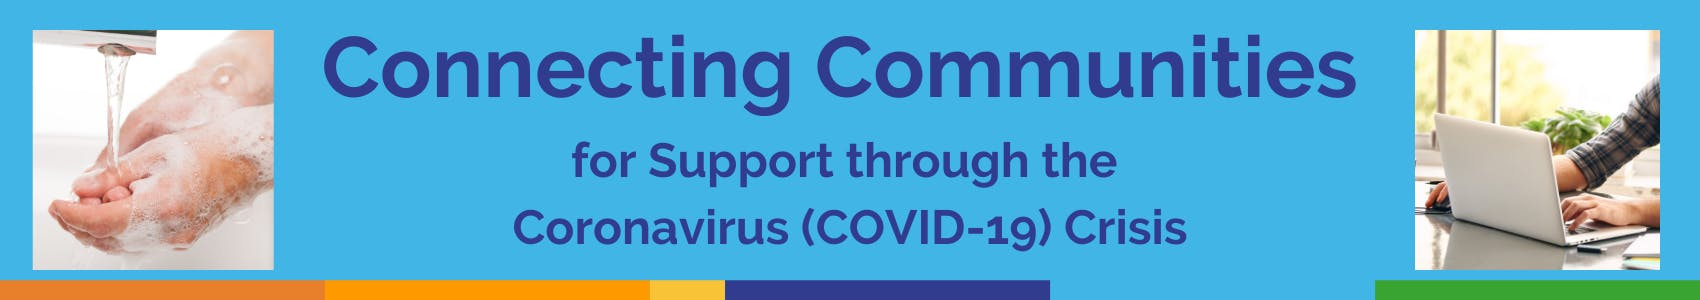 Connecting Communities for Support through COVID-19